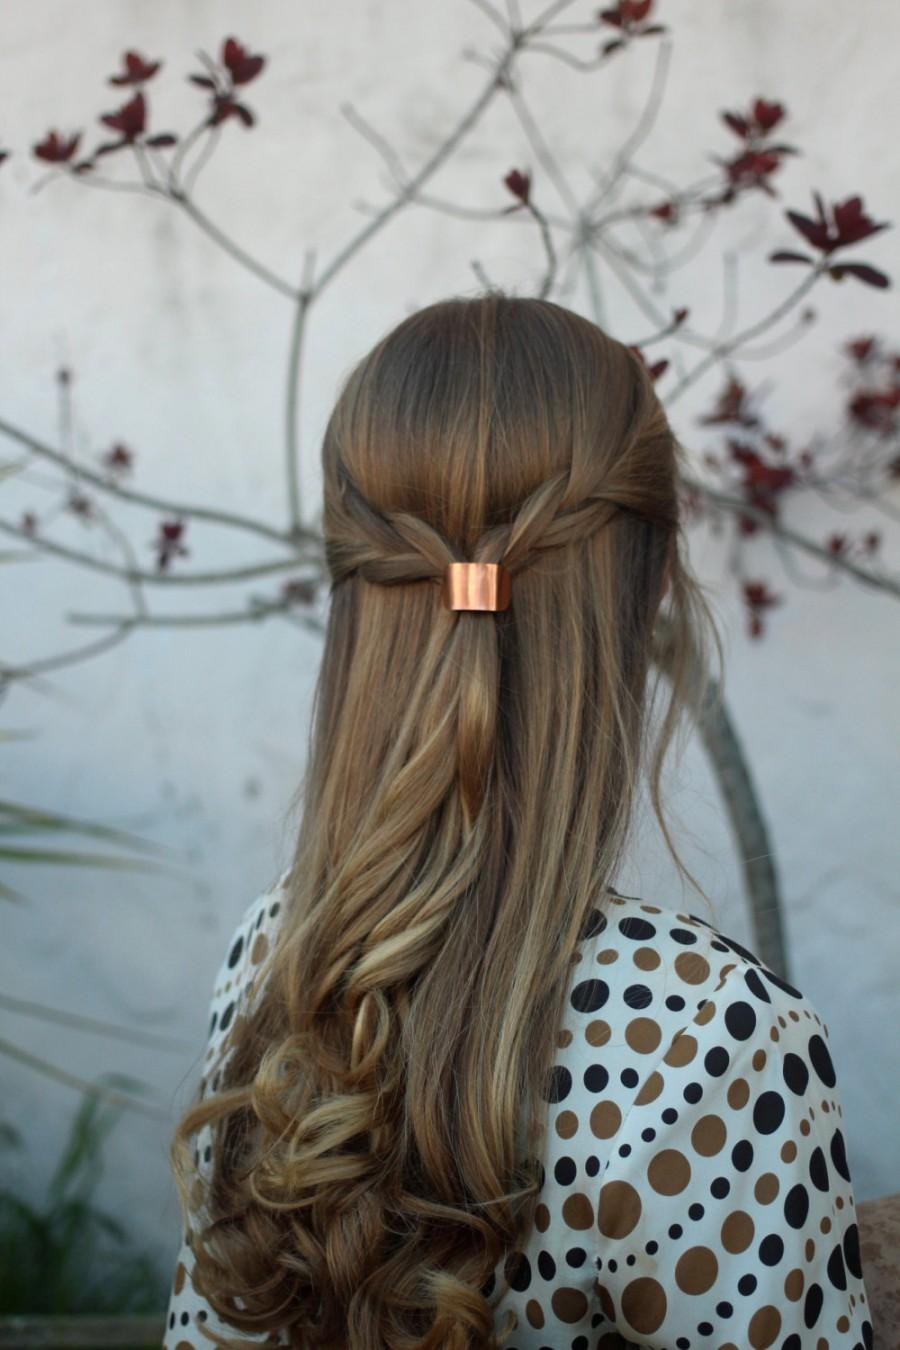 Metal hair cuff - size small copper ponytail holder rustic hair accessories  silver pony tail tie boho chic shiny brass hair slide for her 9abe291a939f